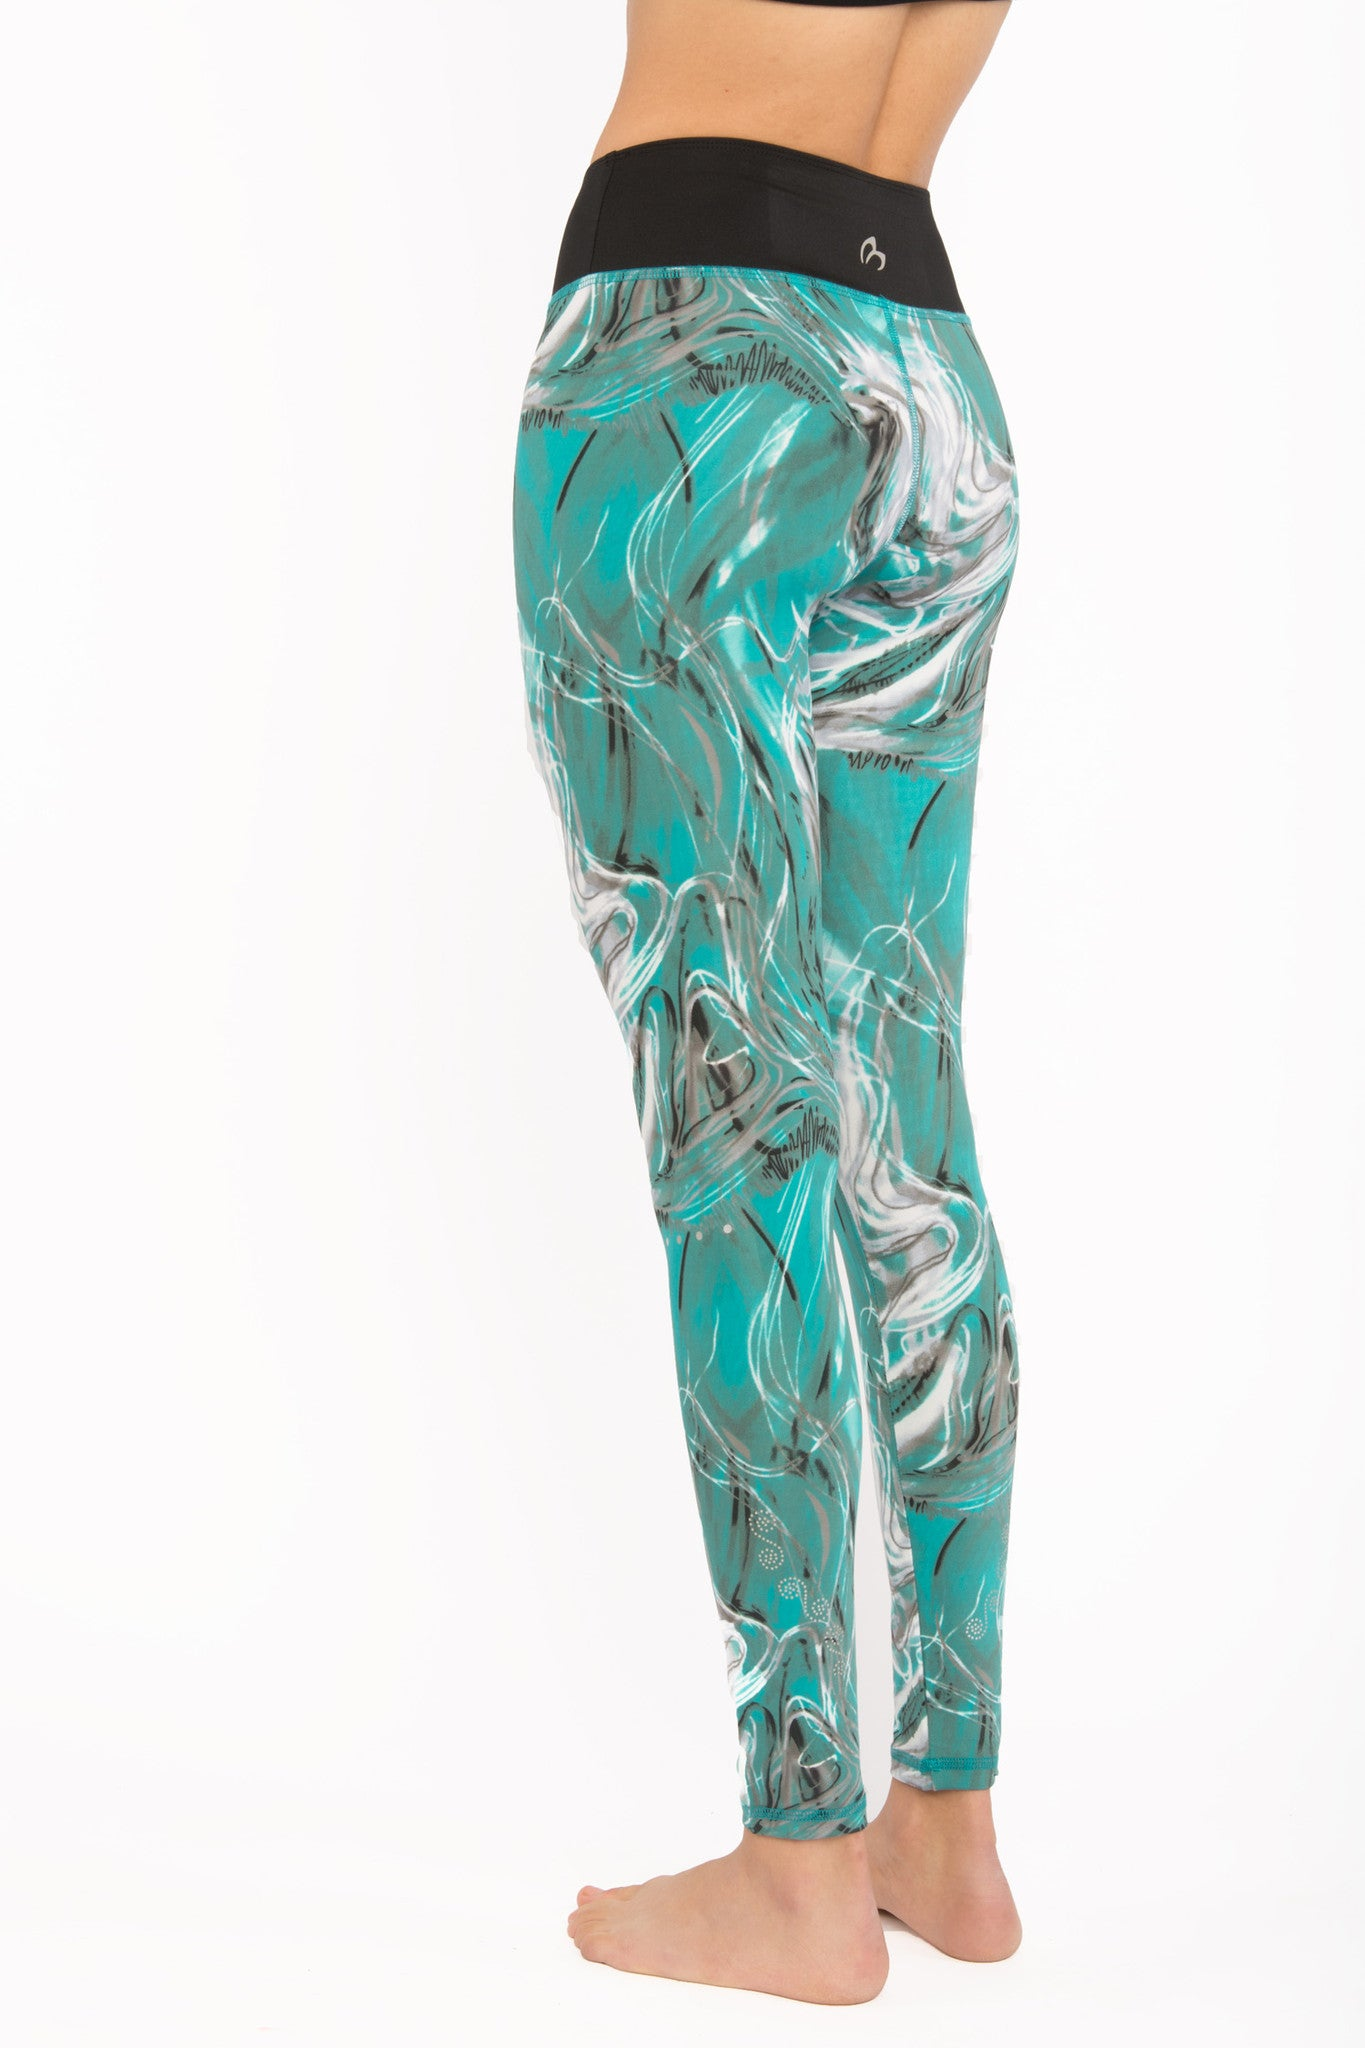 Ocean Swirl Yoga Leggings